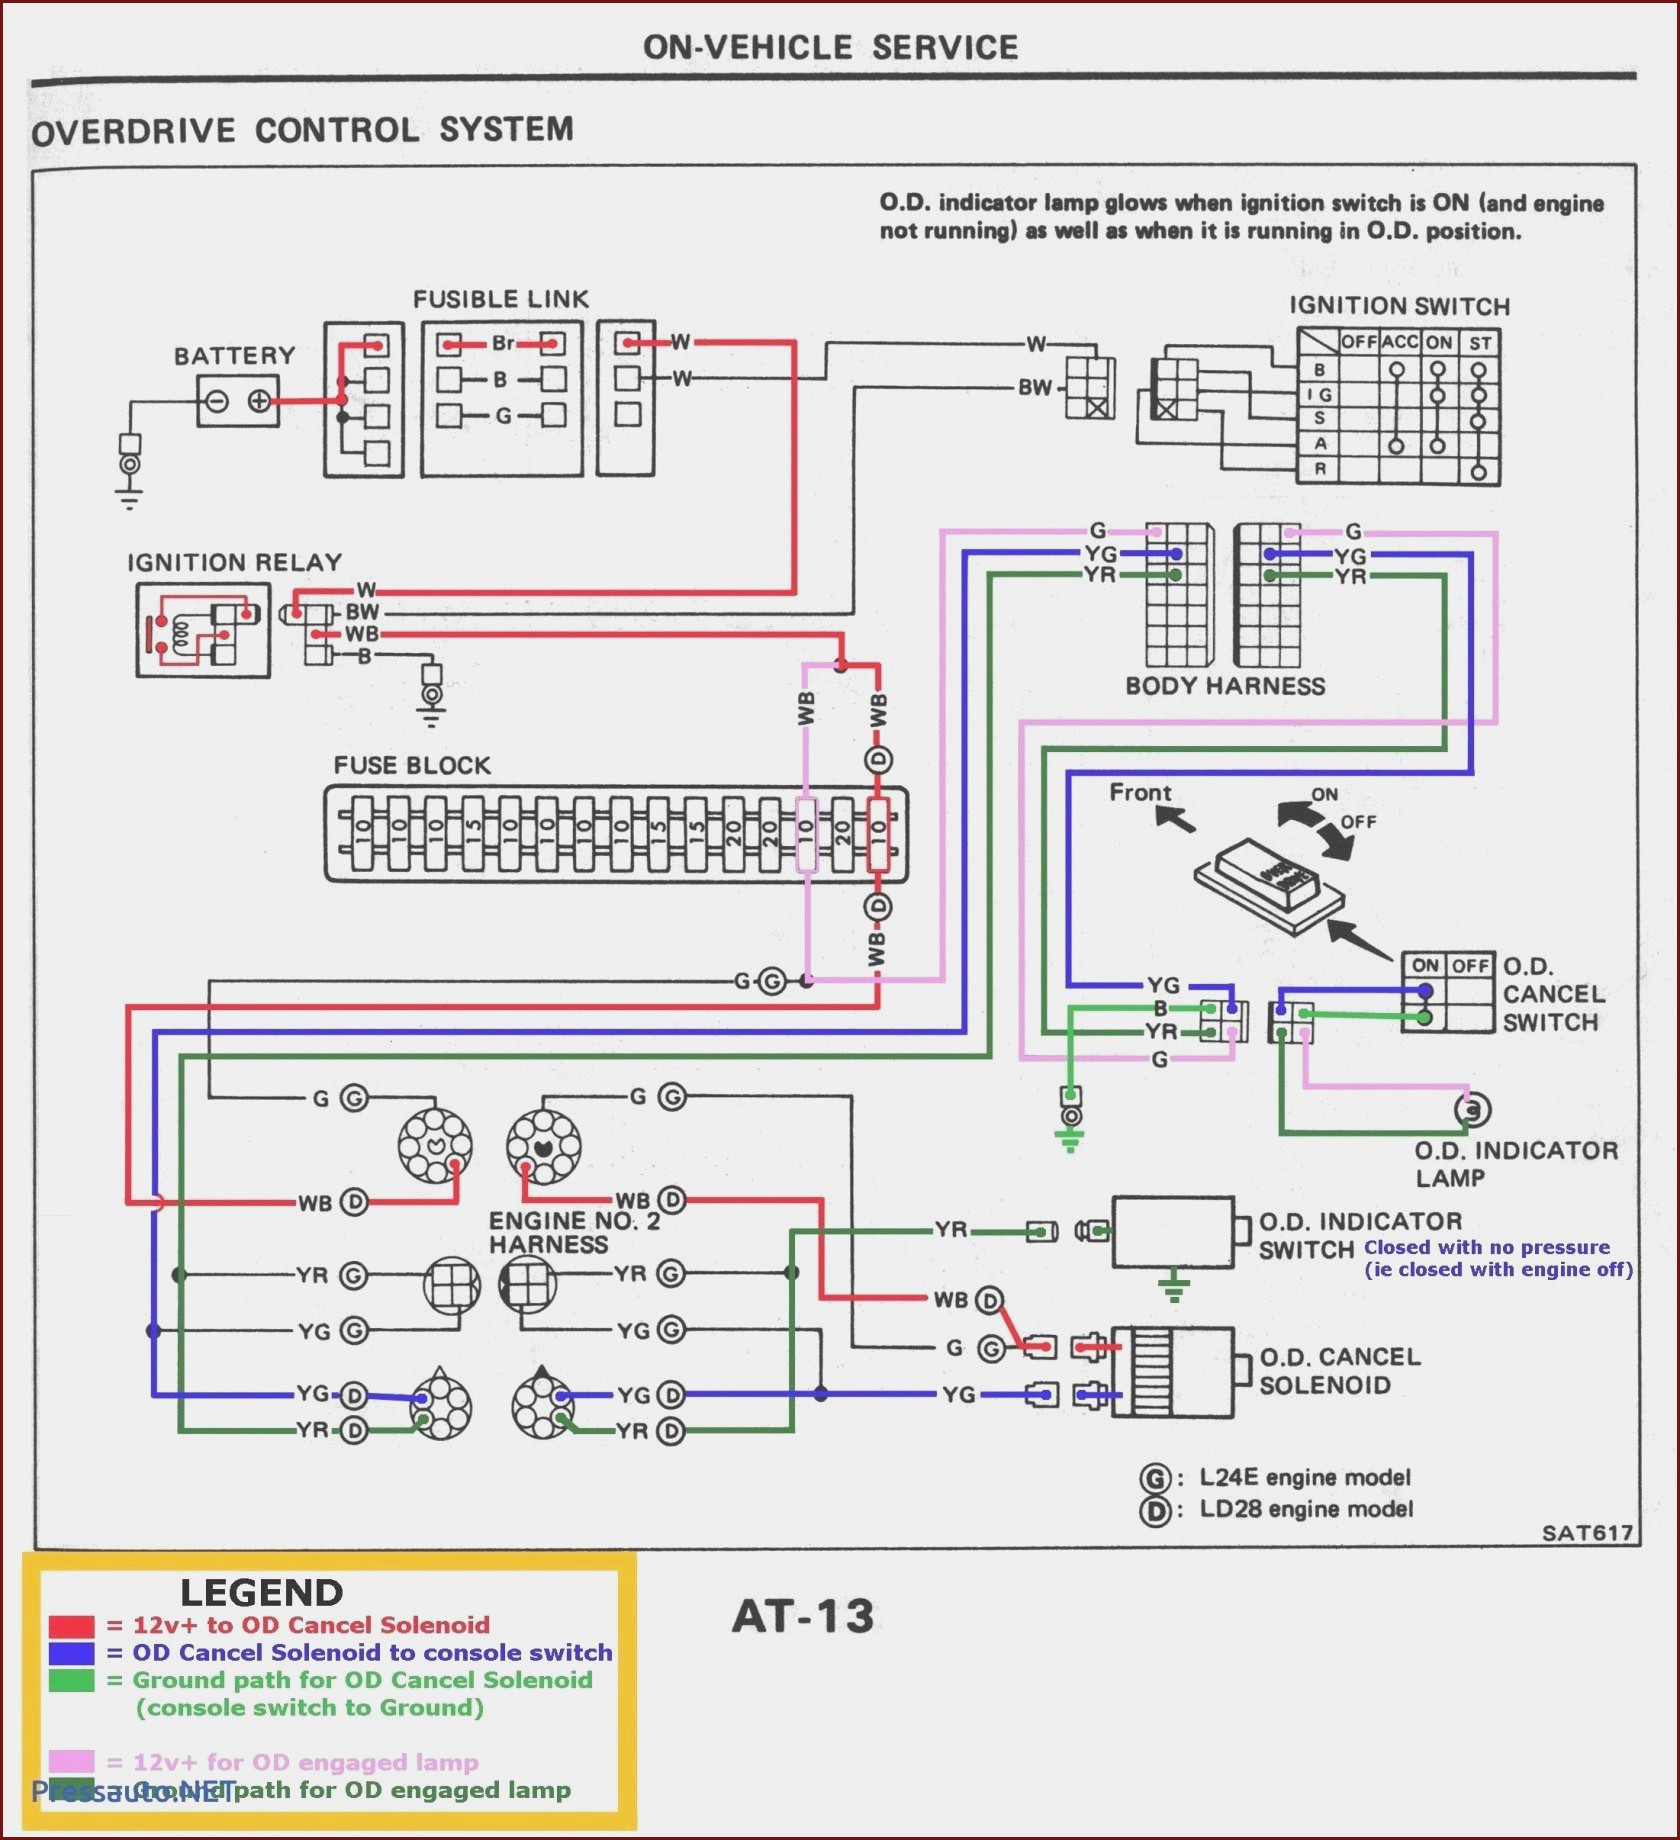 Wiring Diagram for Kohler Engine 3a126 Bmw E53 Ac Wiring Diagram Of Wiring Diagram for Kohler Engine